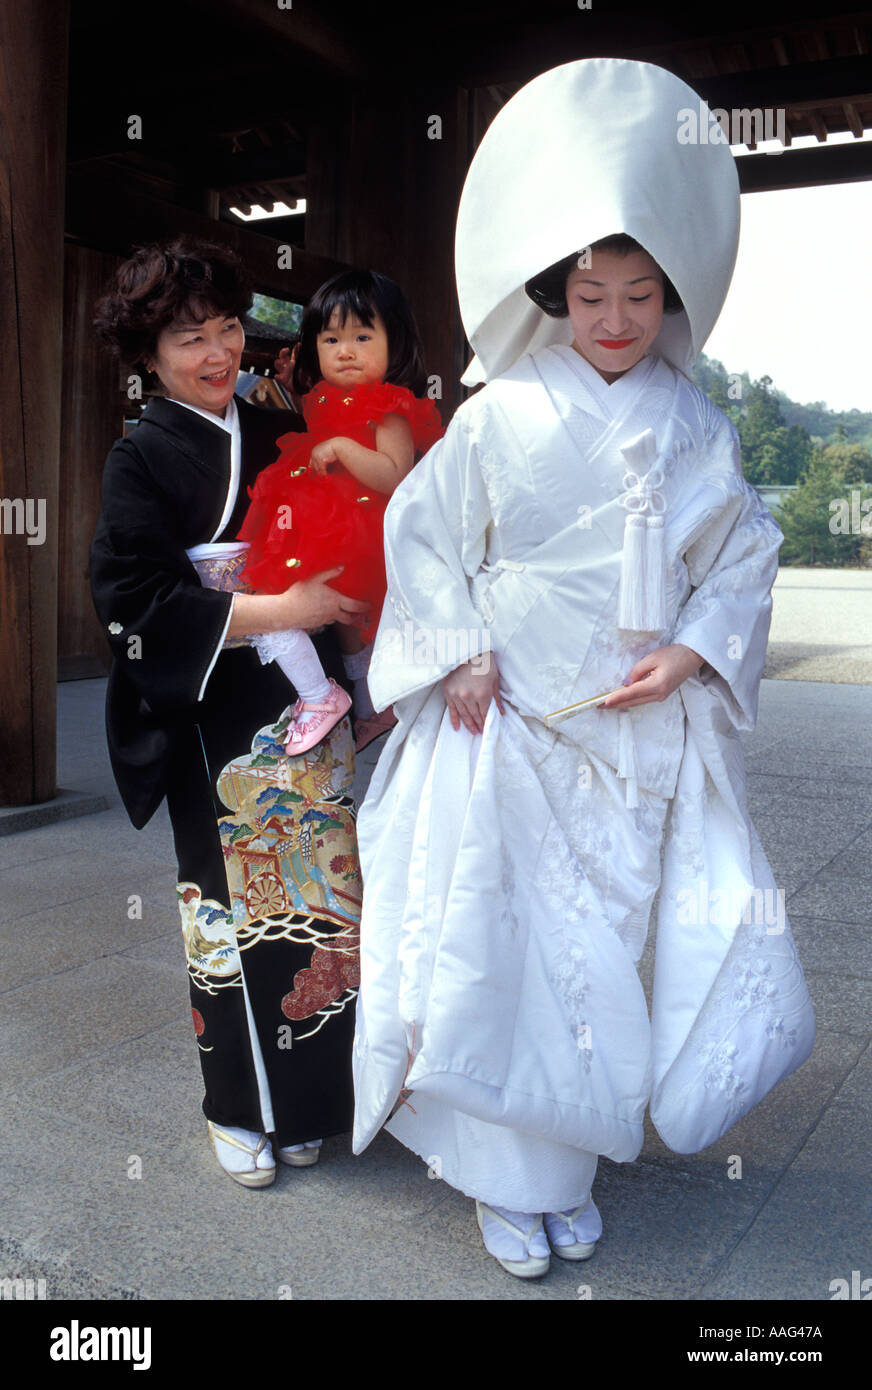 Japanese wedding blessings - Japanese Bride In Traditional Wedding Kimono At Kashihara Shrine Nara Prefecture Japan Bride S Mother And